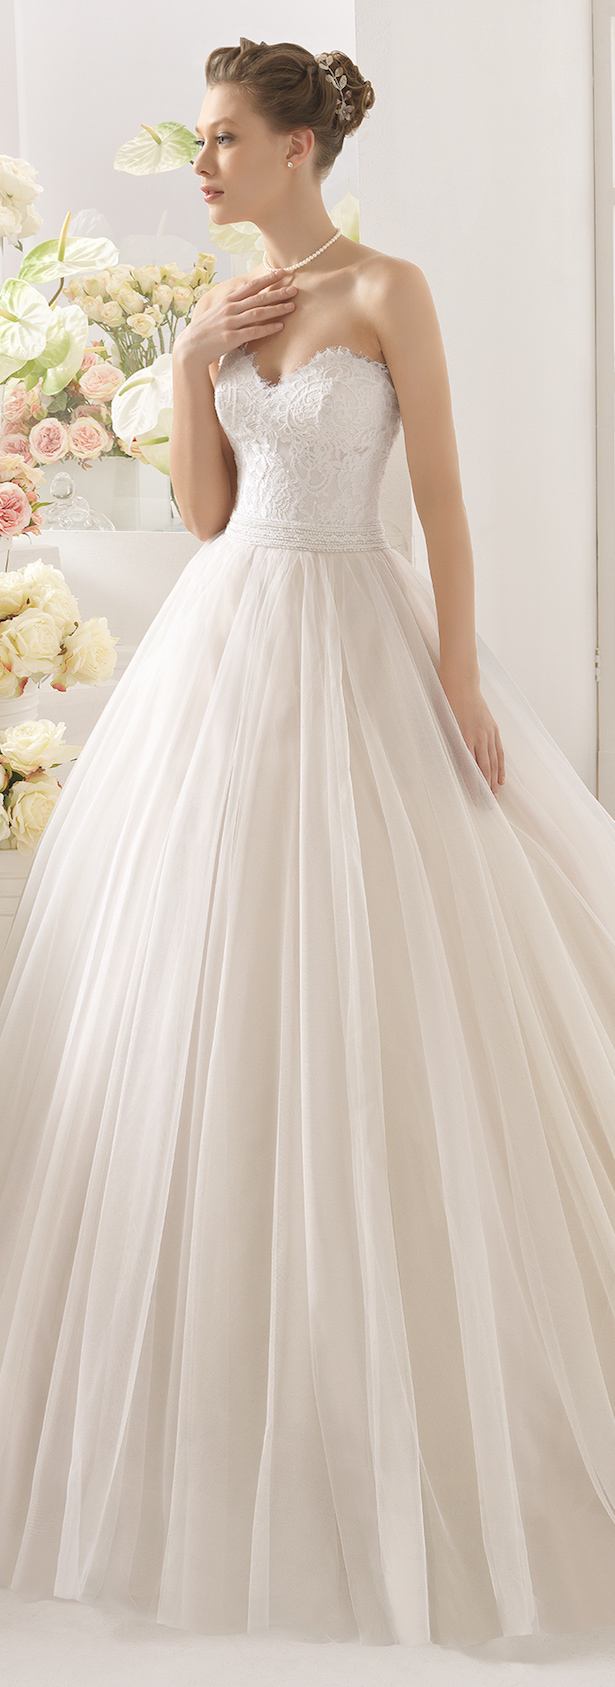 Wedding Gowns Website